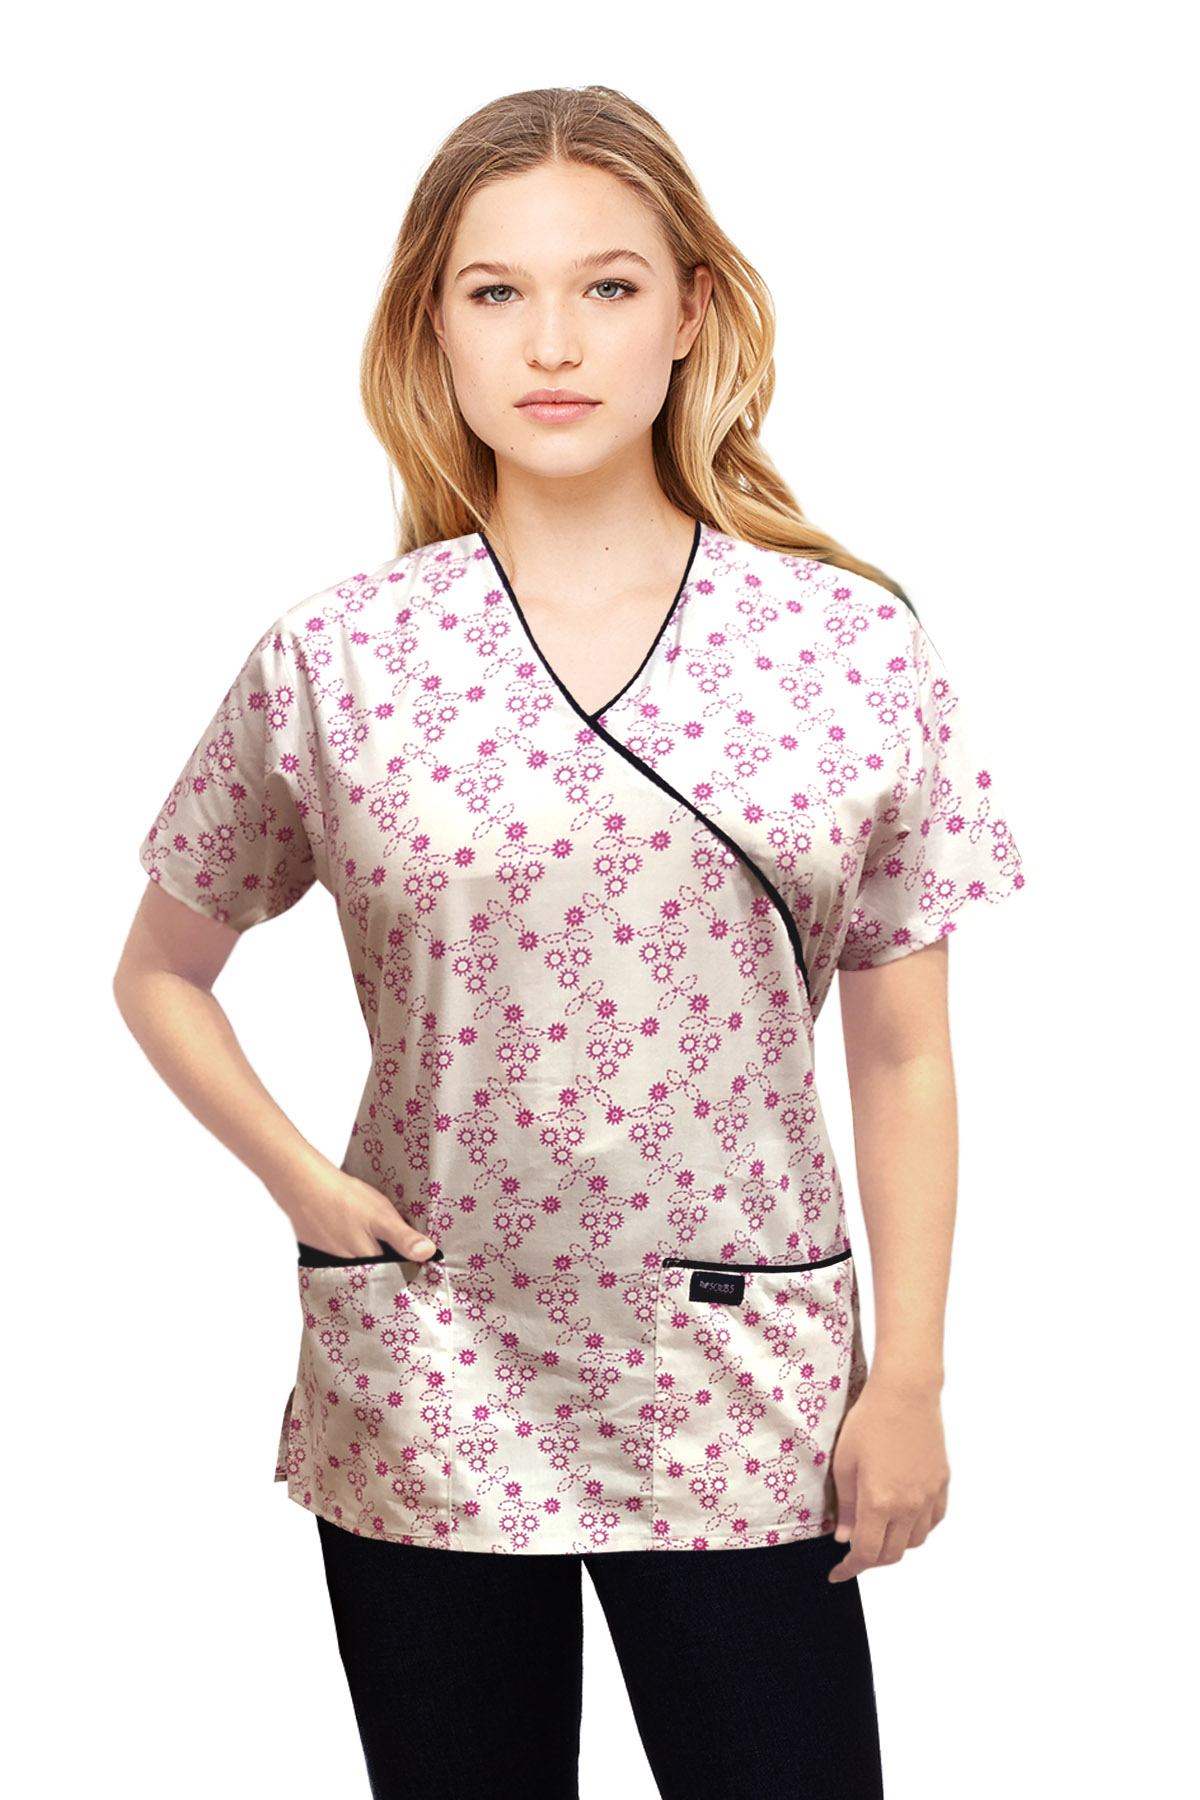 Printed scrub set mock wrap 5 pocket half sleeve in Small Pink Flower Print with black piping (top 3 pocket with bottom 2 pocket boot cut)